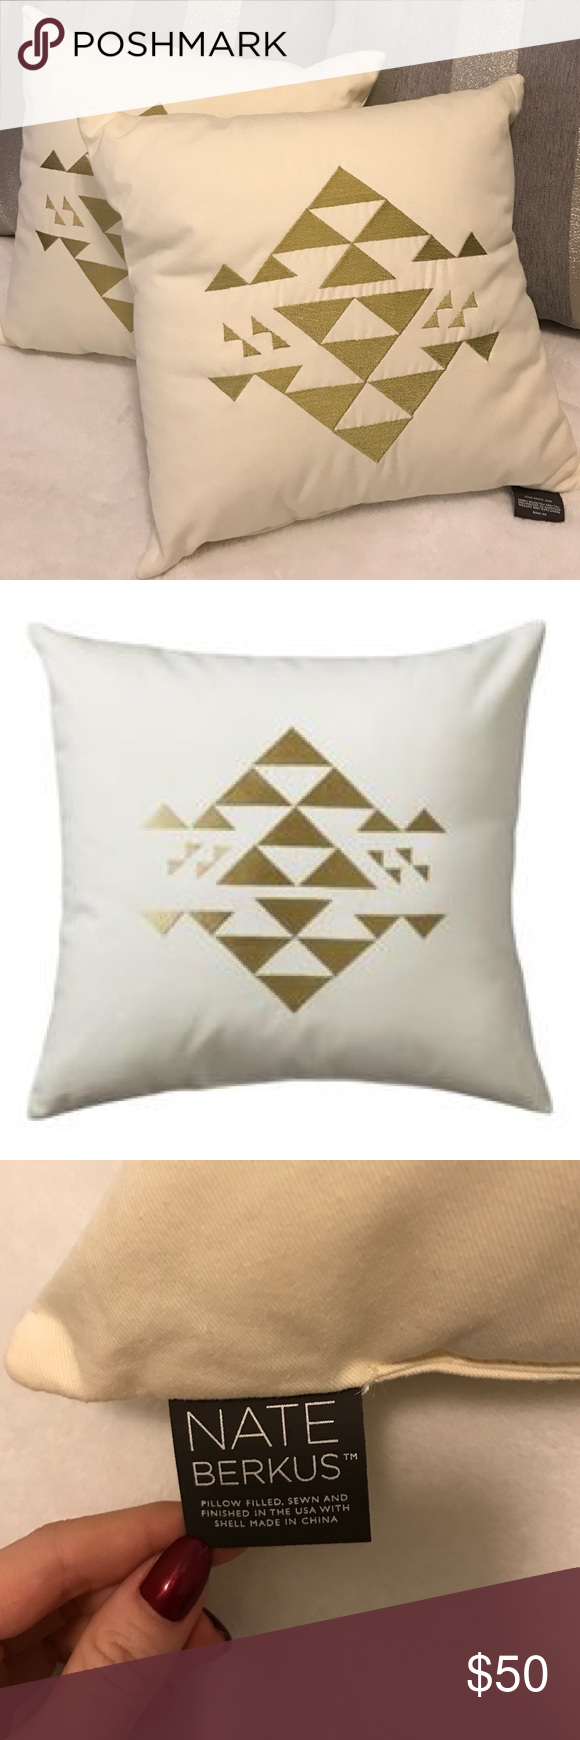 Photo of Nate Berkus Decorative Gold Geometric Pillows BNWT Nate Berkus Decorative Gold G…